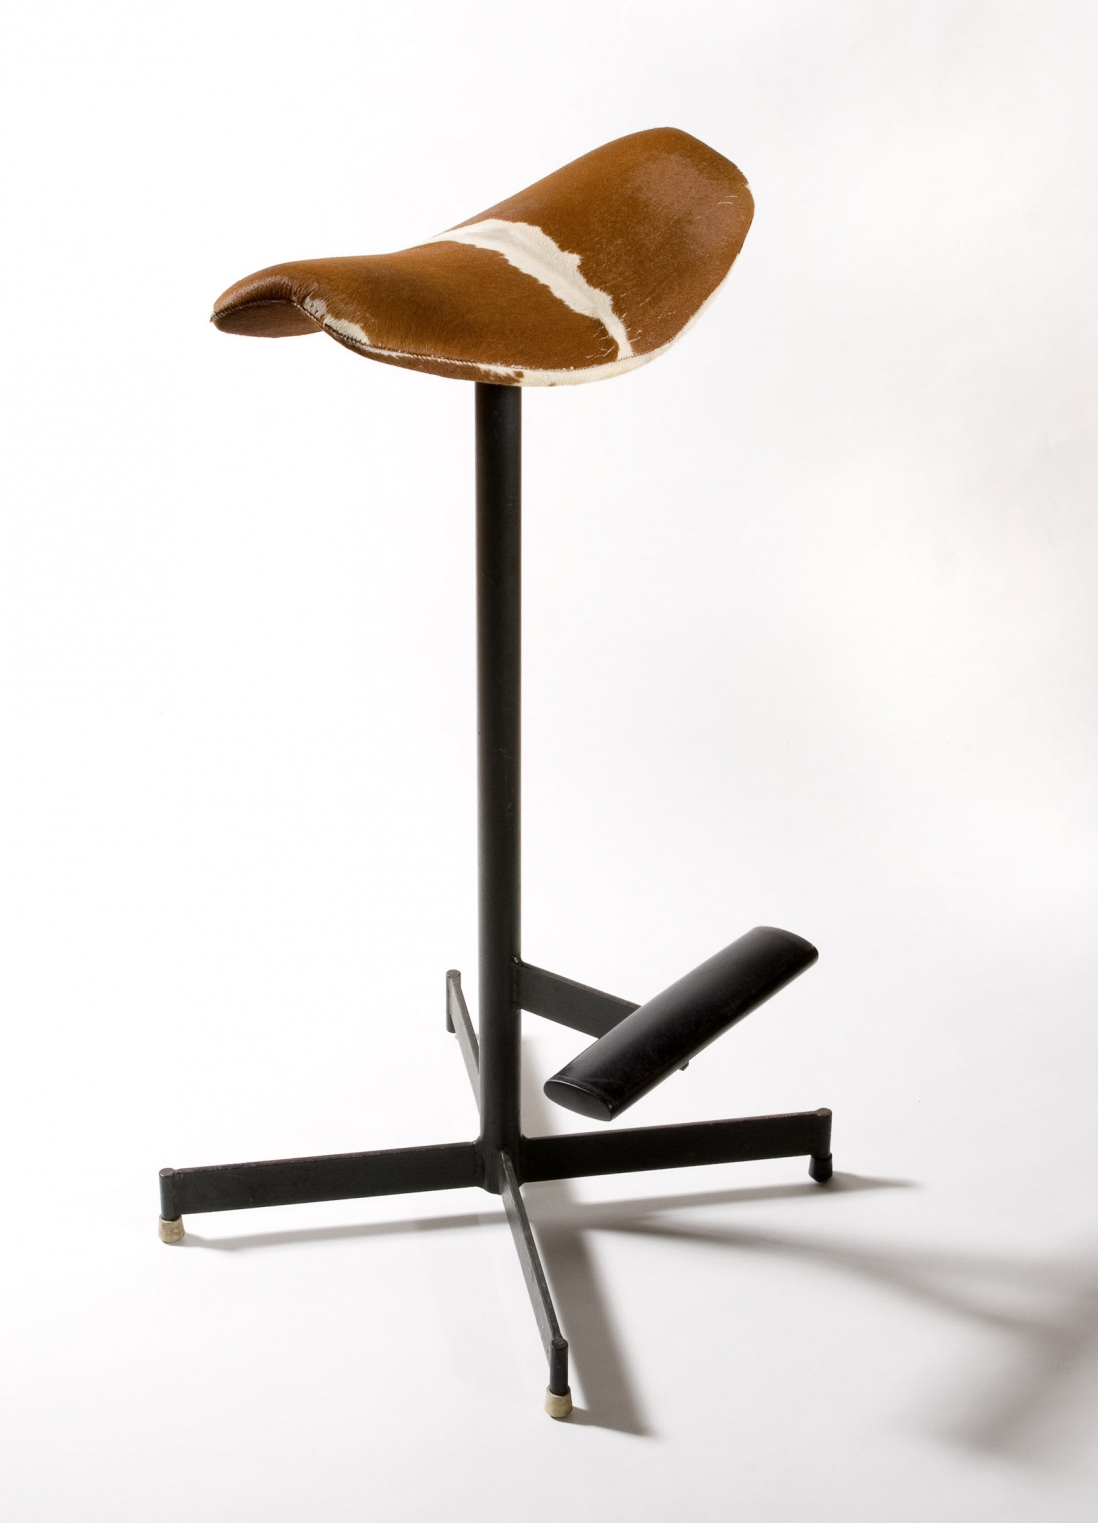 Saddle stool, Sydney, c1963